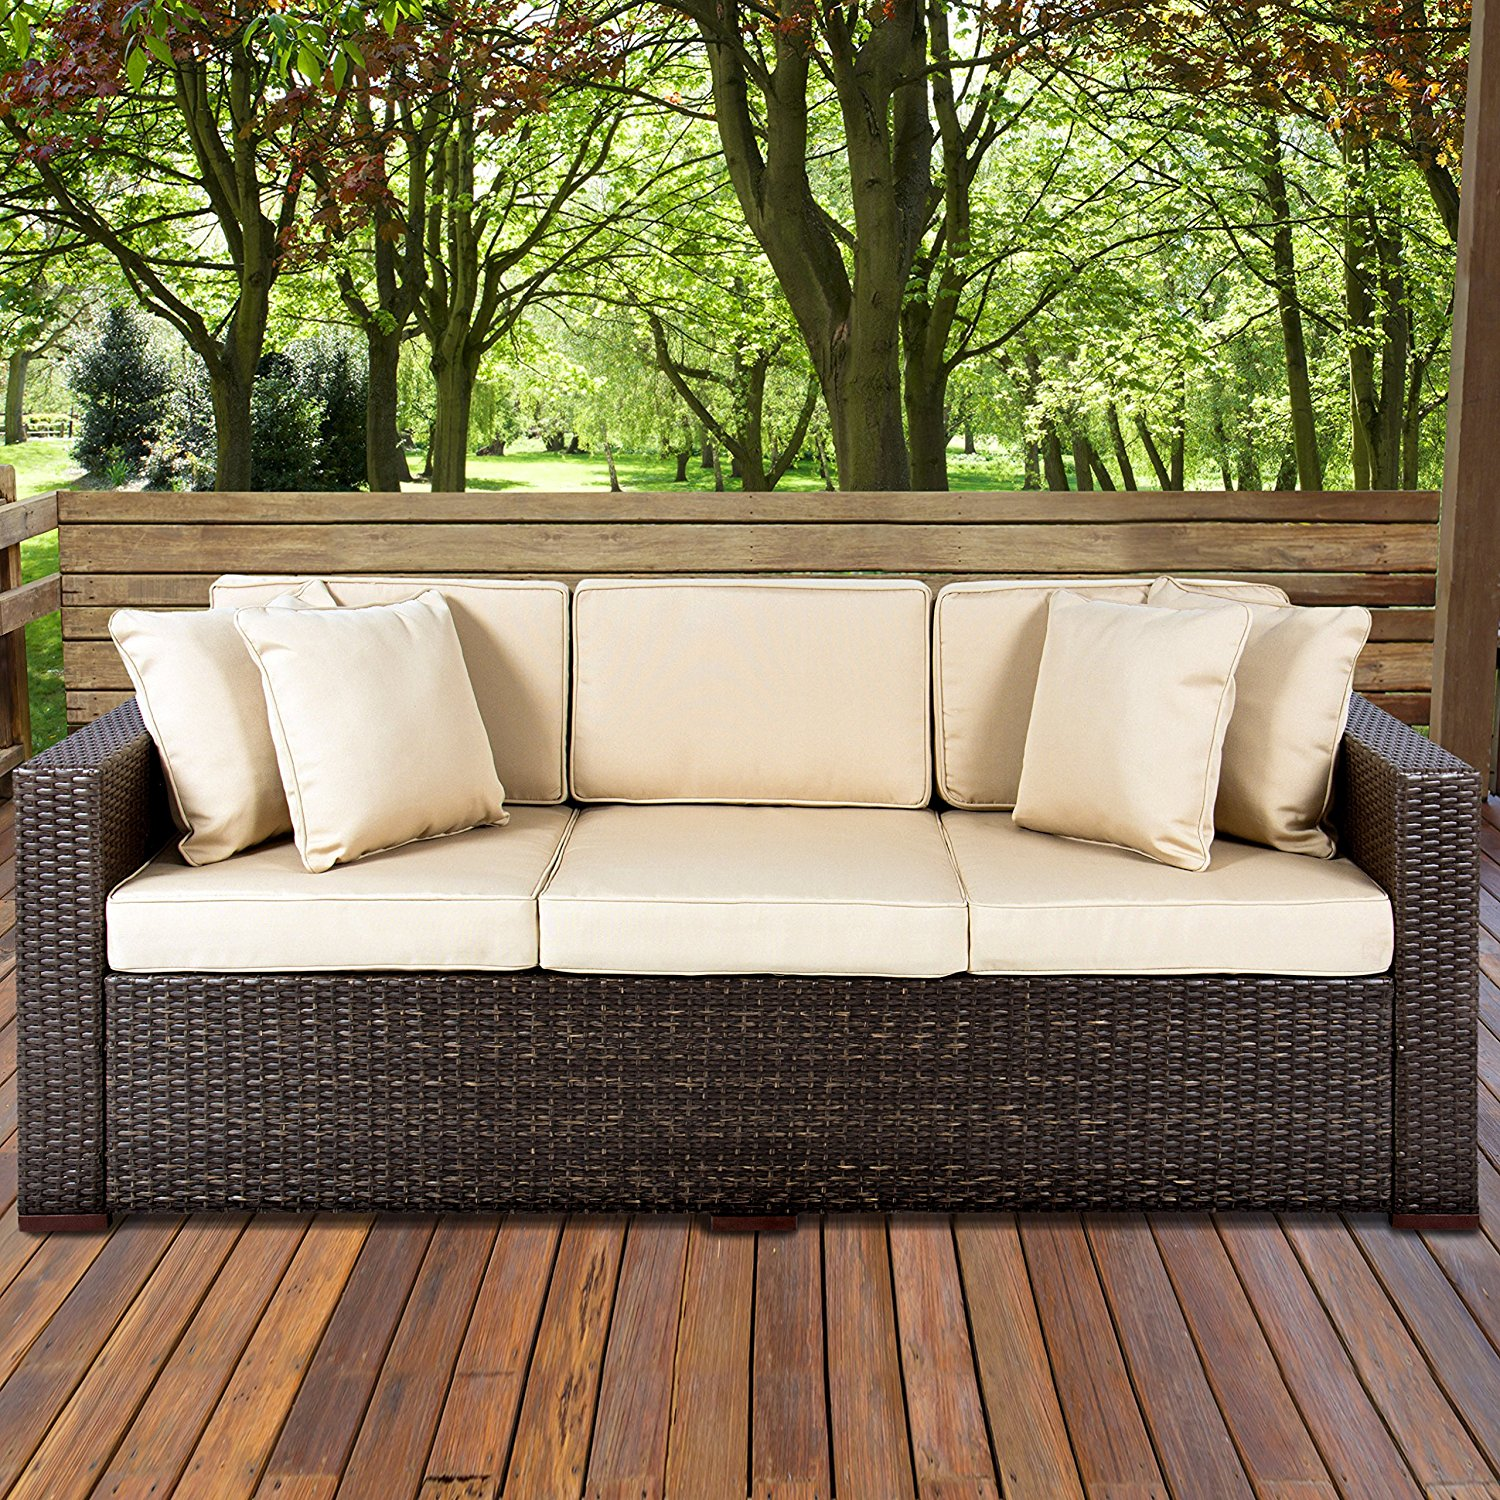 Rattan Sofa Near Me Top 10 Best Patio Sofas In 2019 Top Best Pro Review